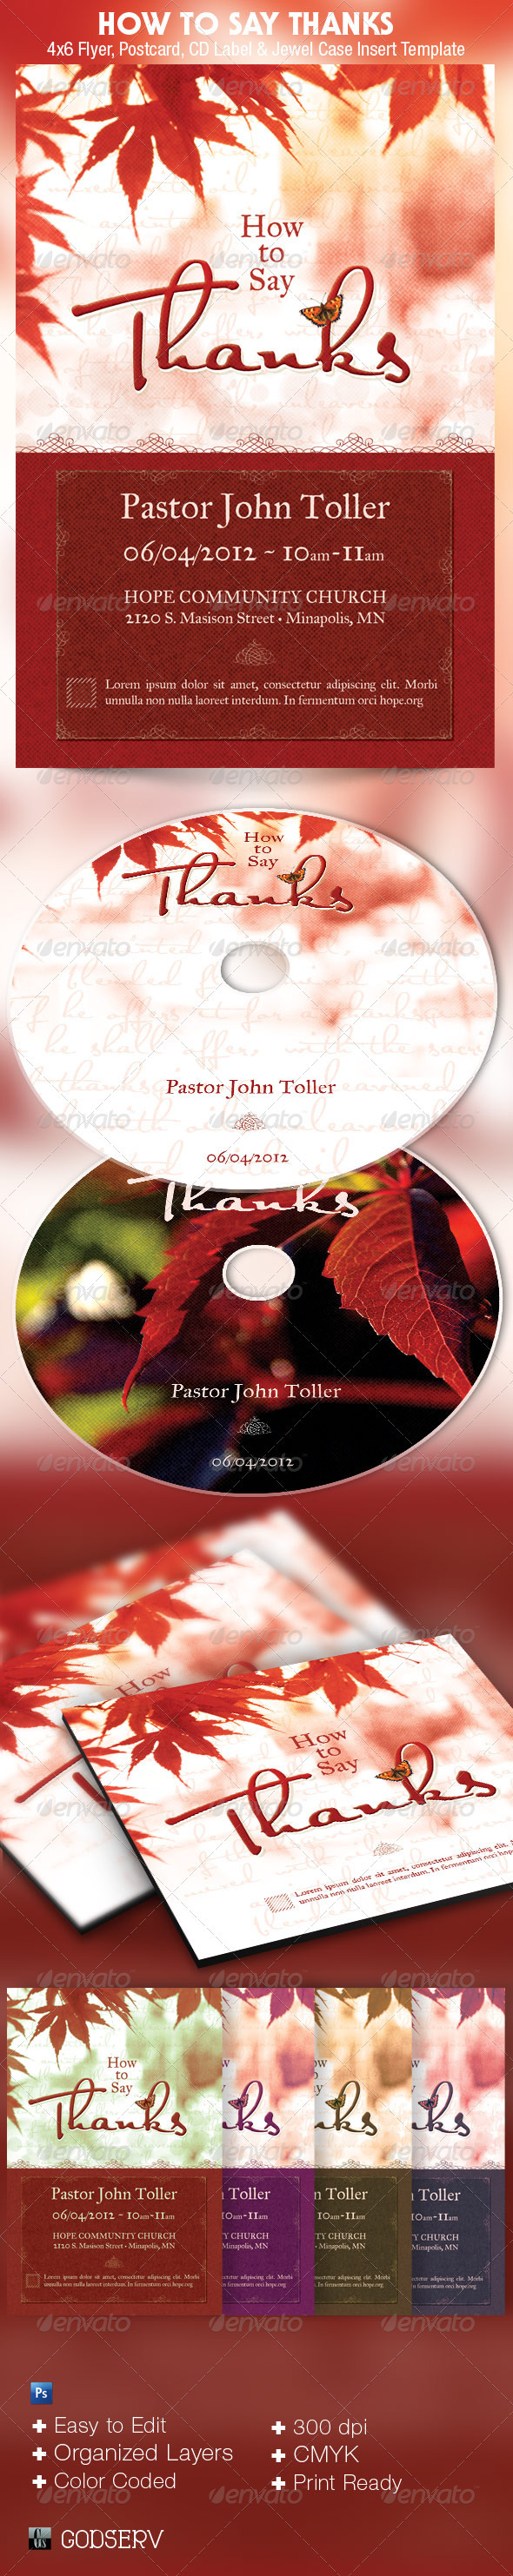 Thanks Church Flyer CD Template - Church Flyers